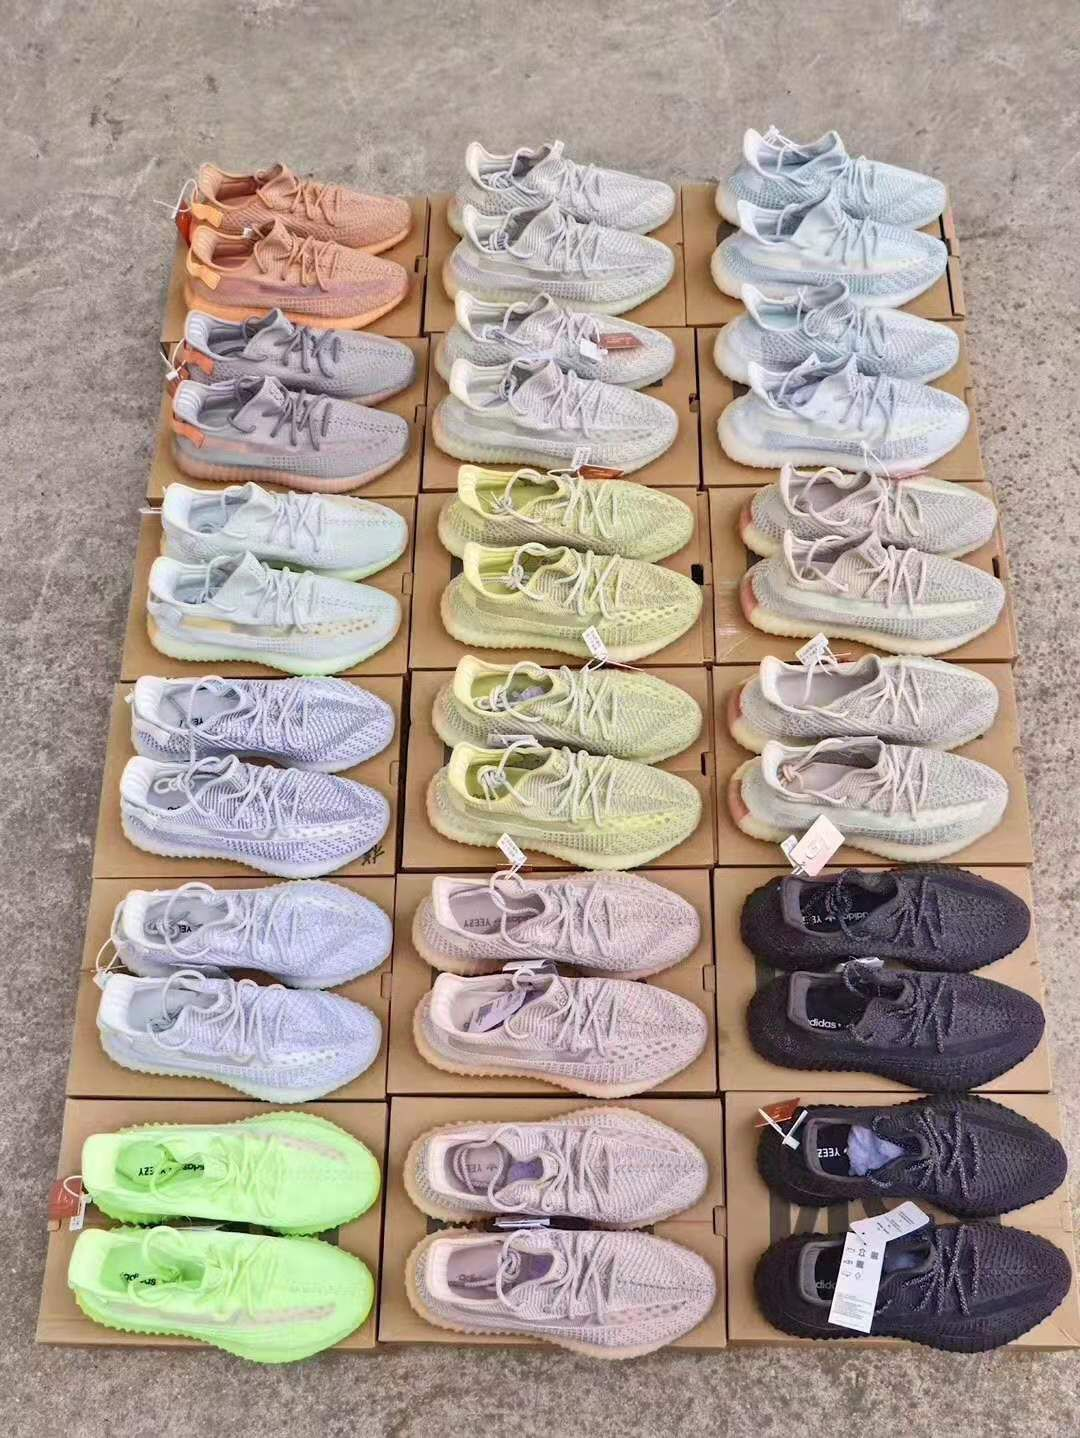 Original Quality Adidas Yeezy Boost 350 V2 Collection